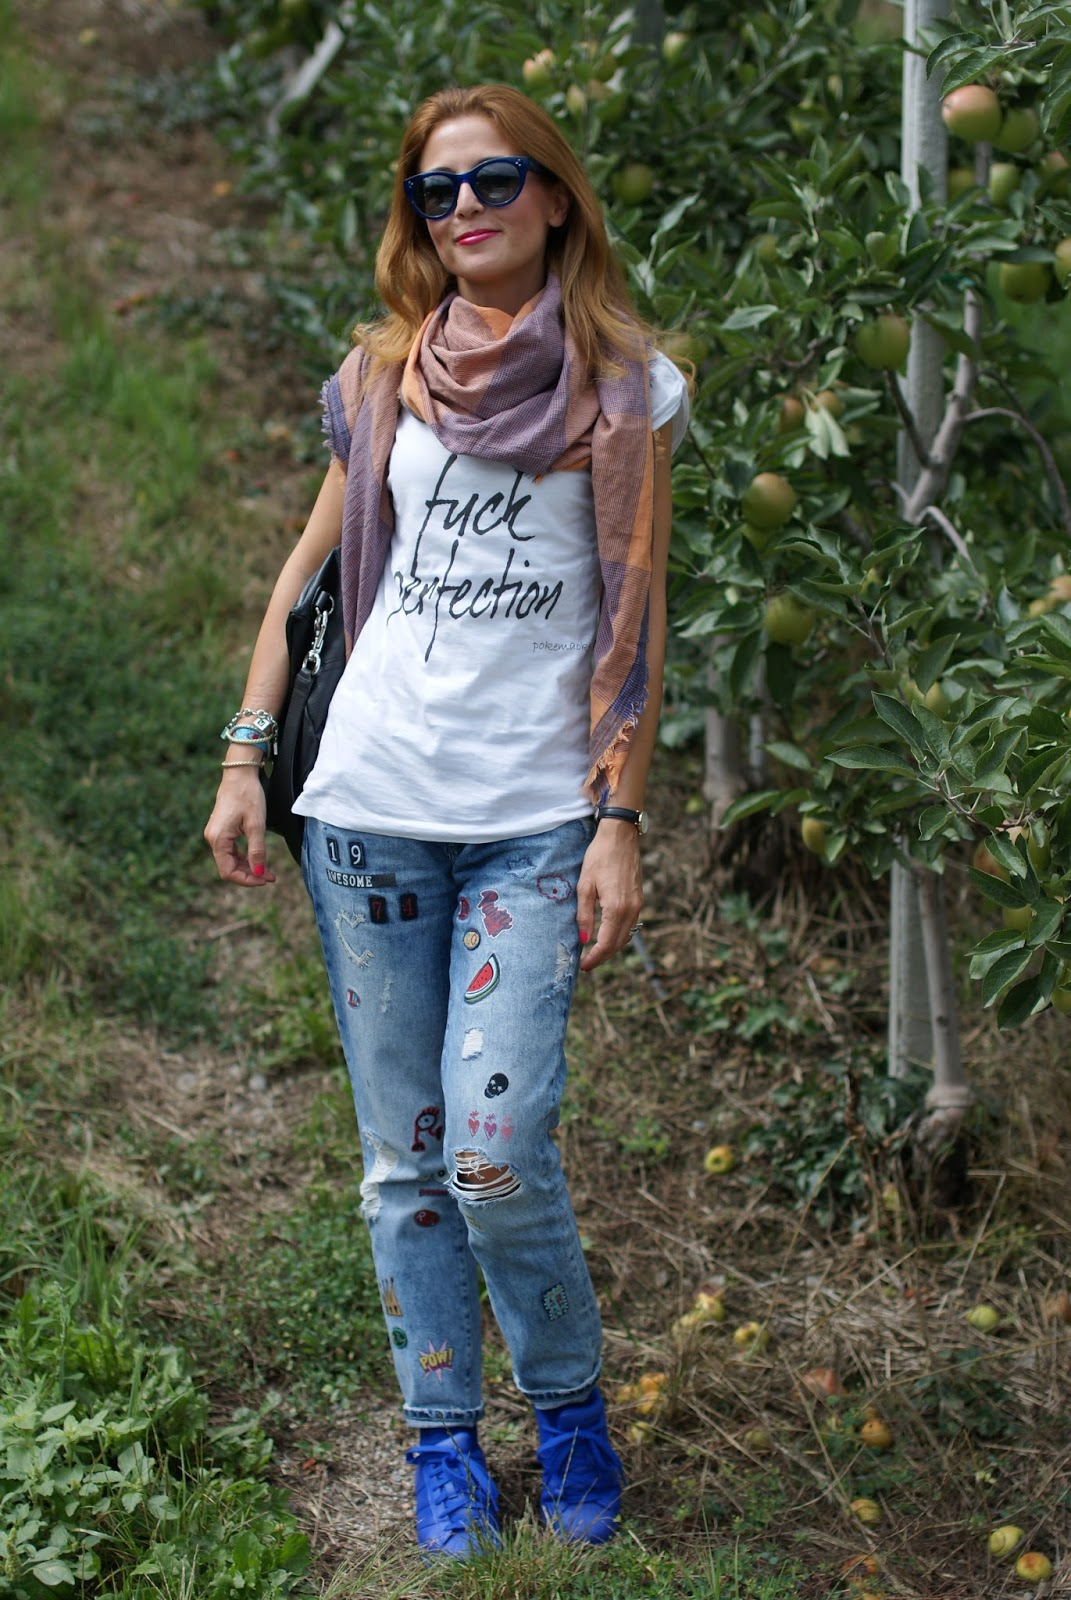 Fuck perfection, a rebel fashion outfit with my Pokemaoke t-shirt, Givenchy Pandora bag and patchy jeans on Fashion and Cookies fashion blog, fashion blogger style